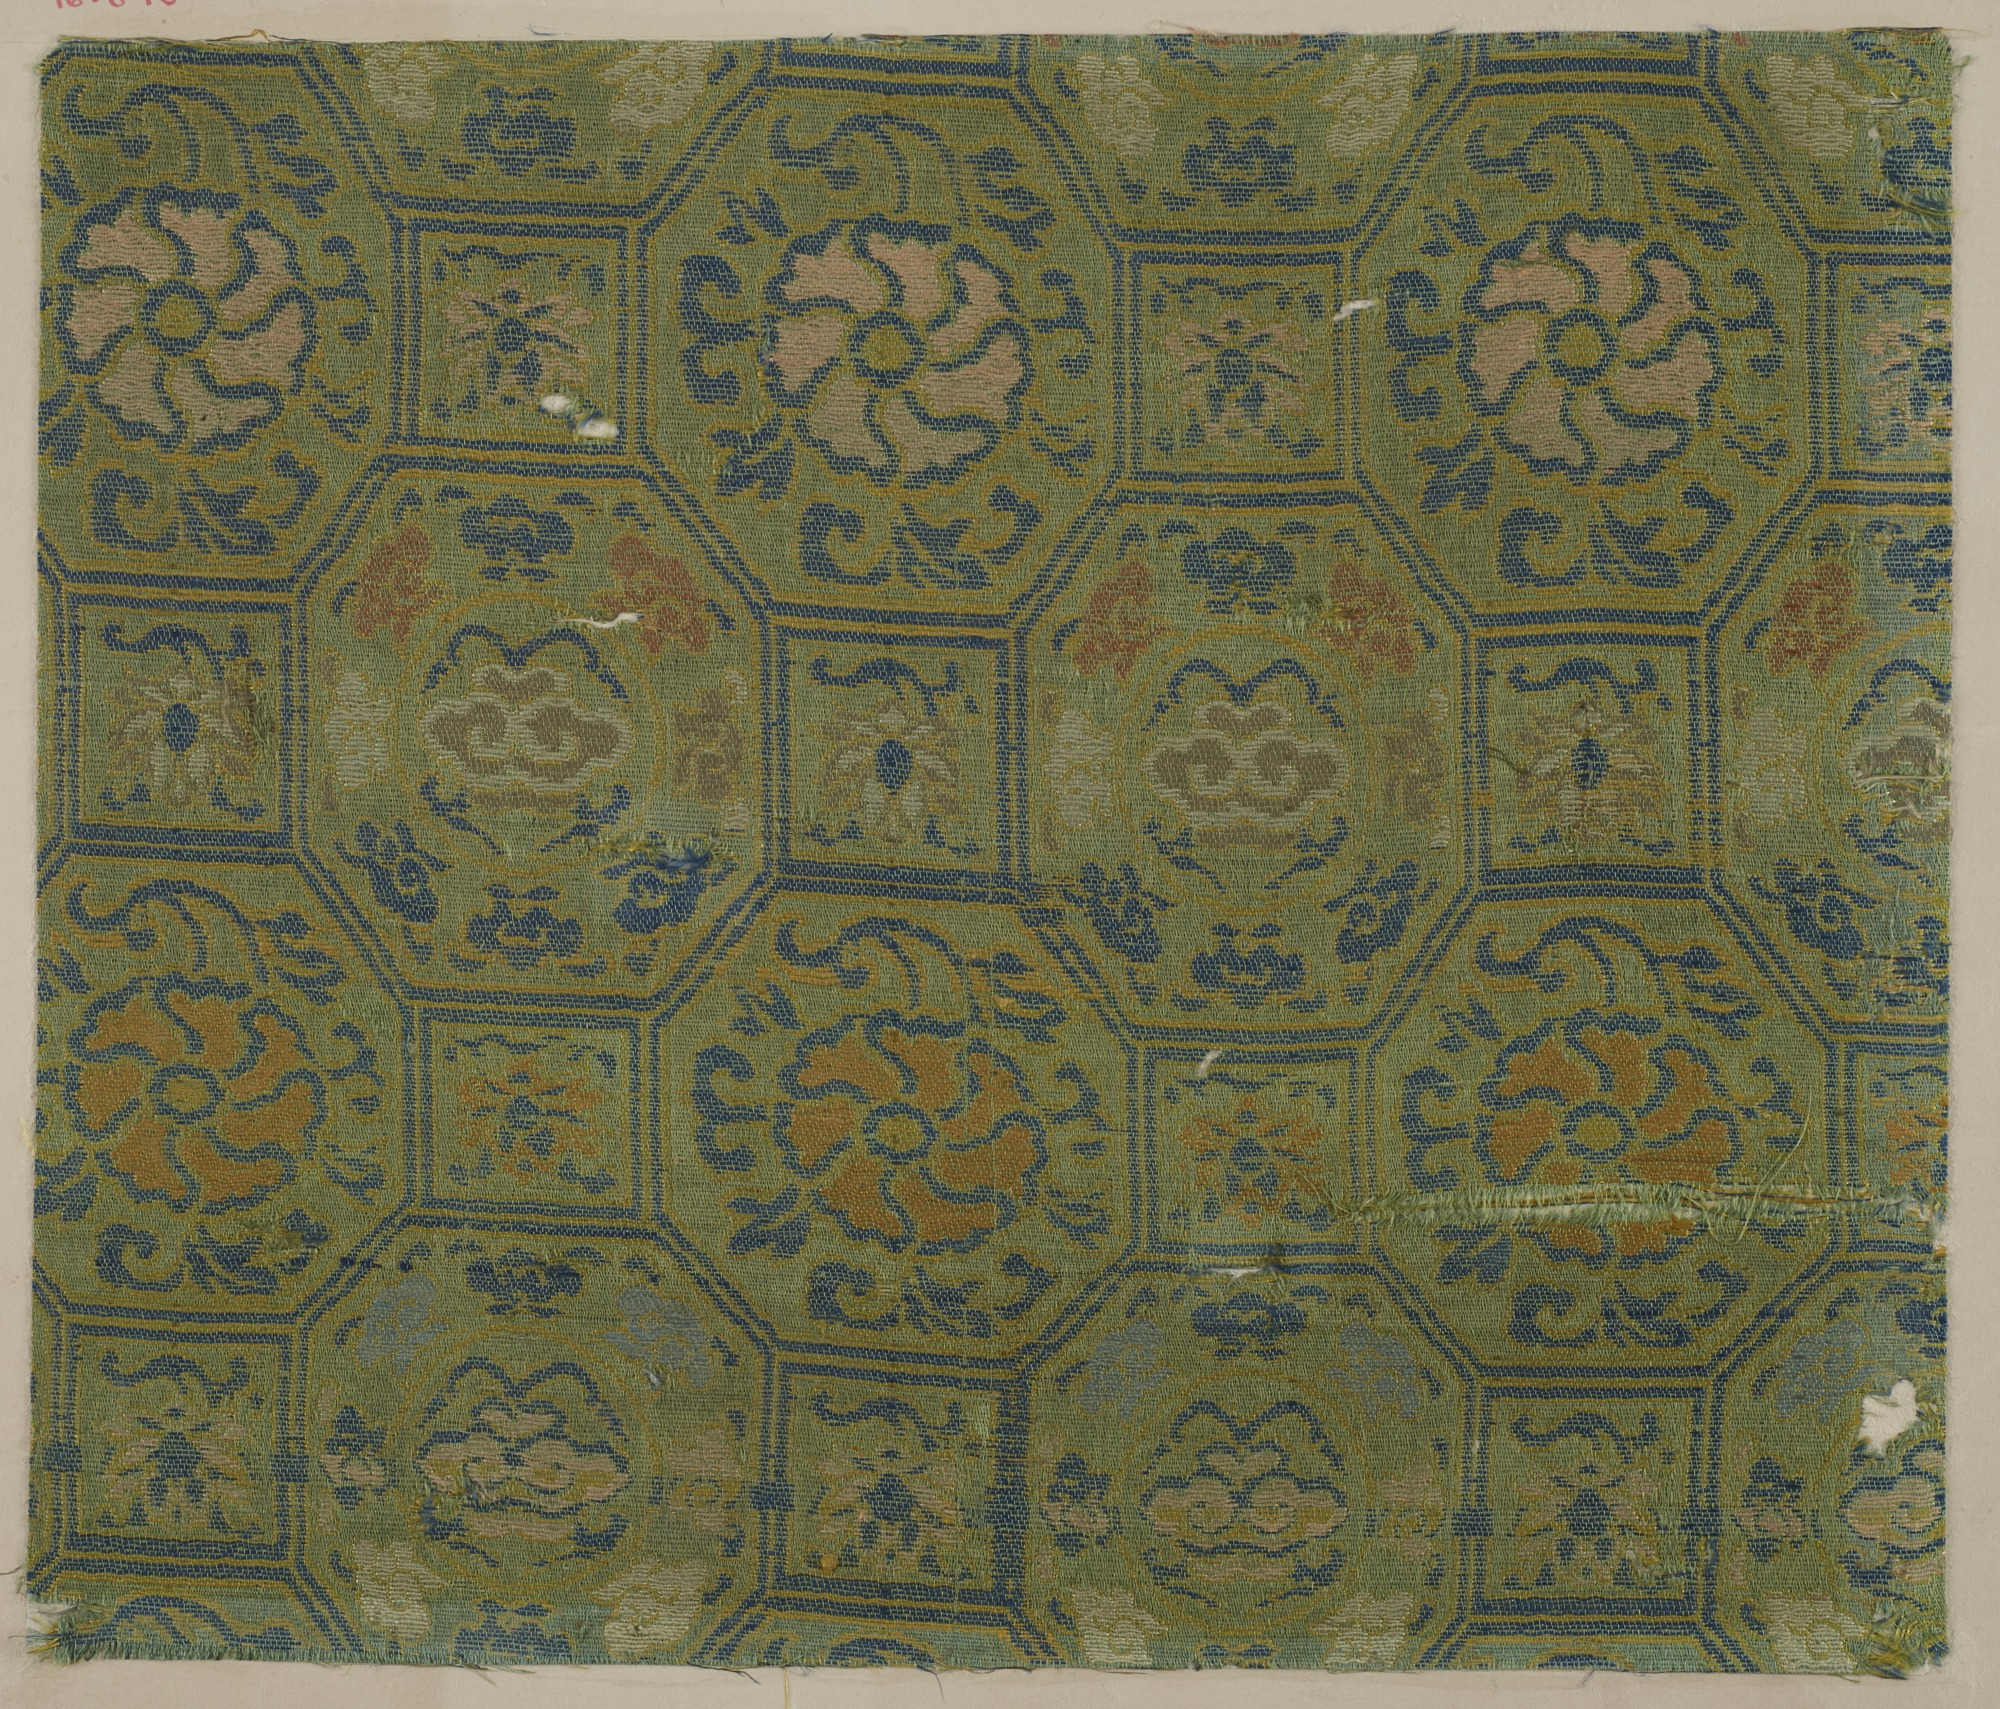 images for Brocade, silk. A sample